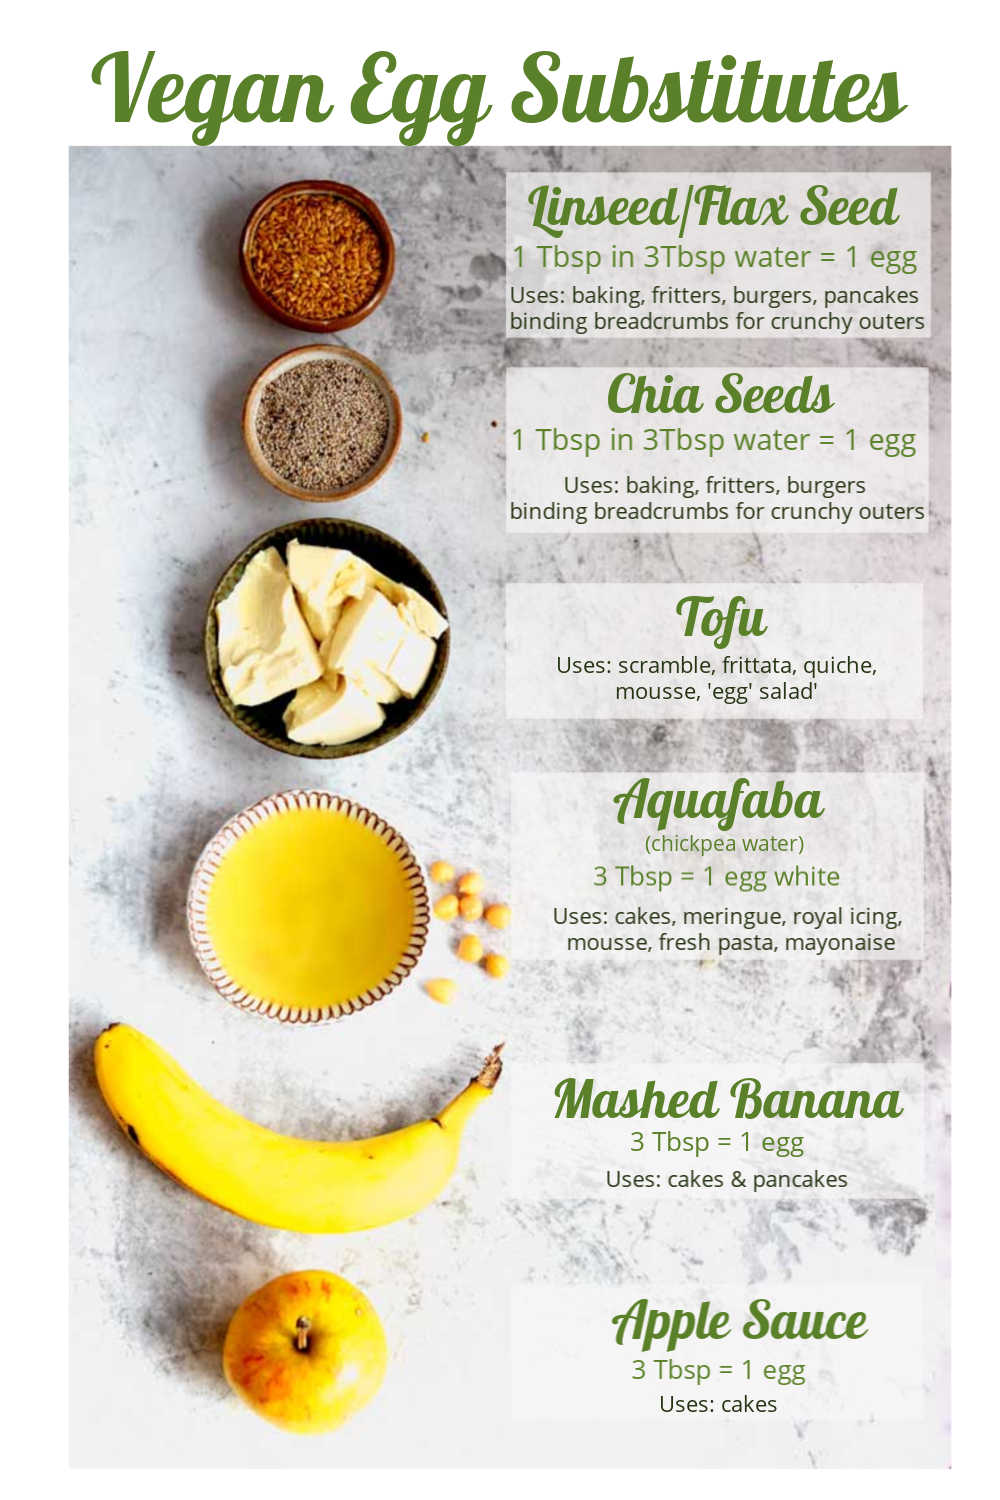 Graphic showing pictures of egg alternatives and how much to use of each to replace eggs in vegan cooking